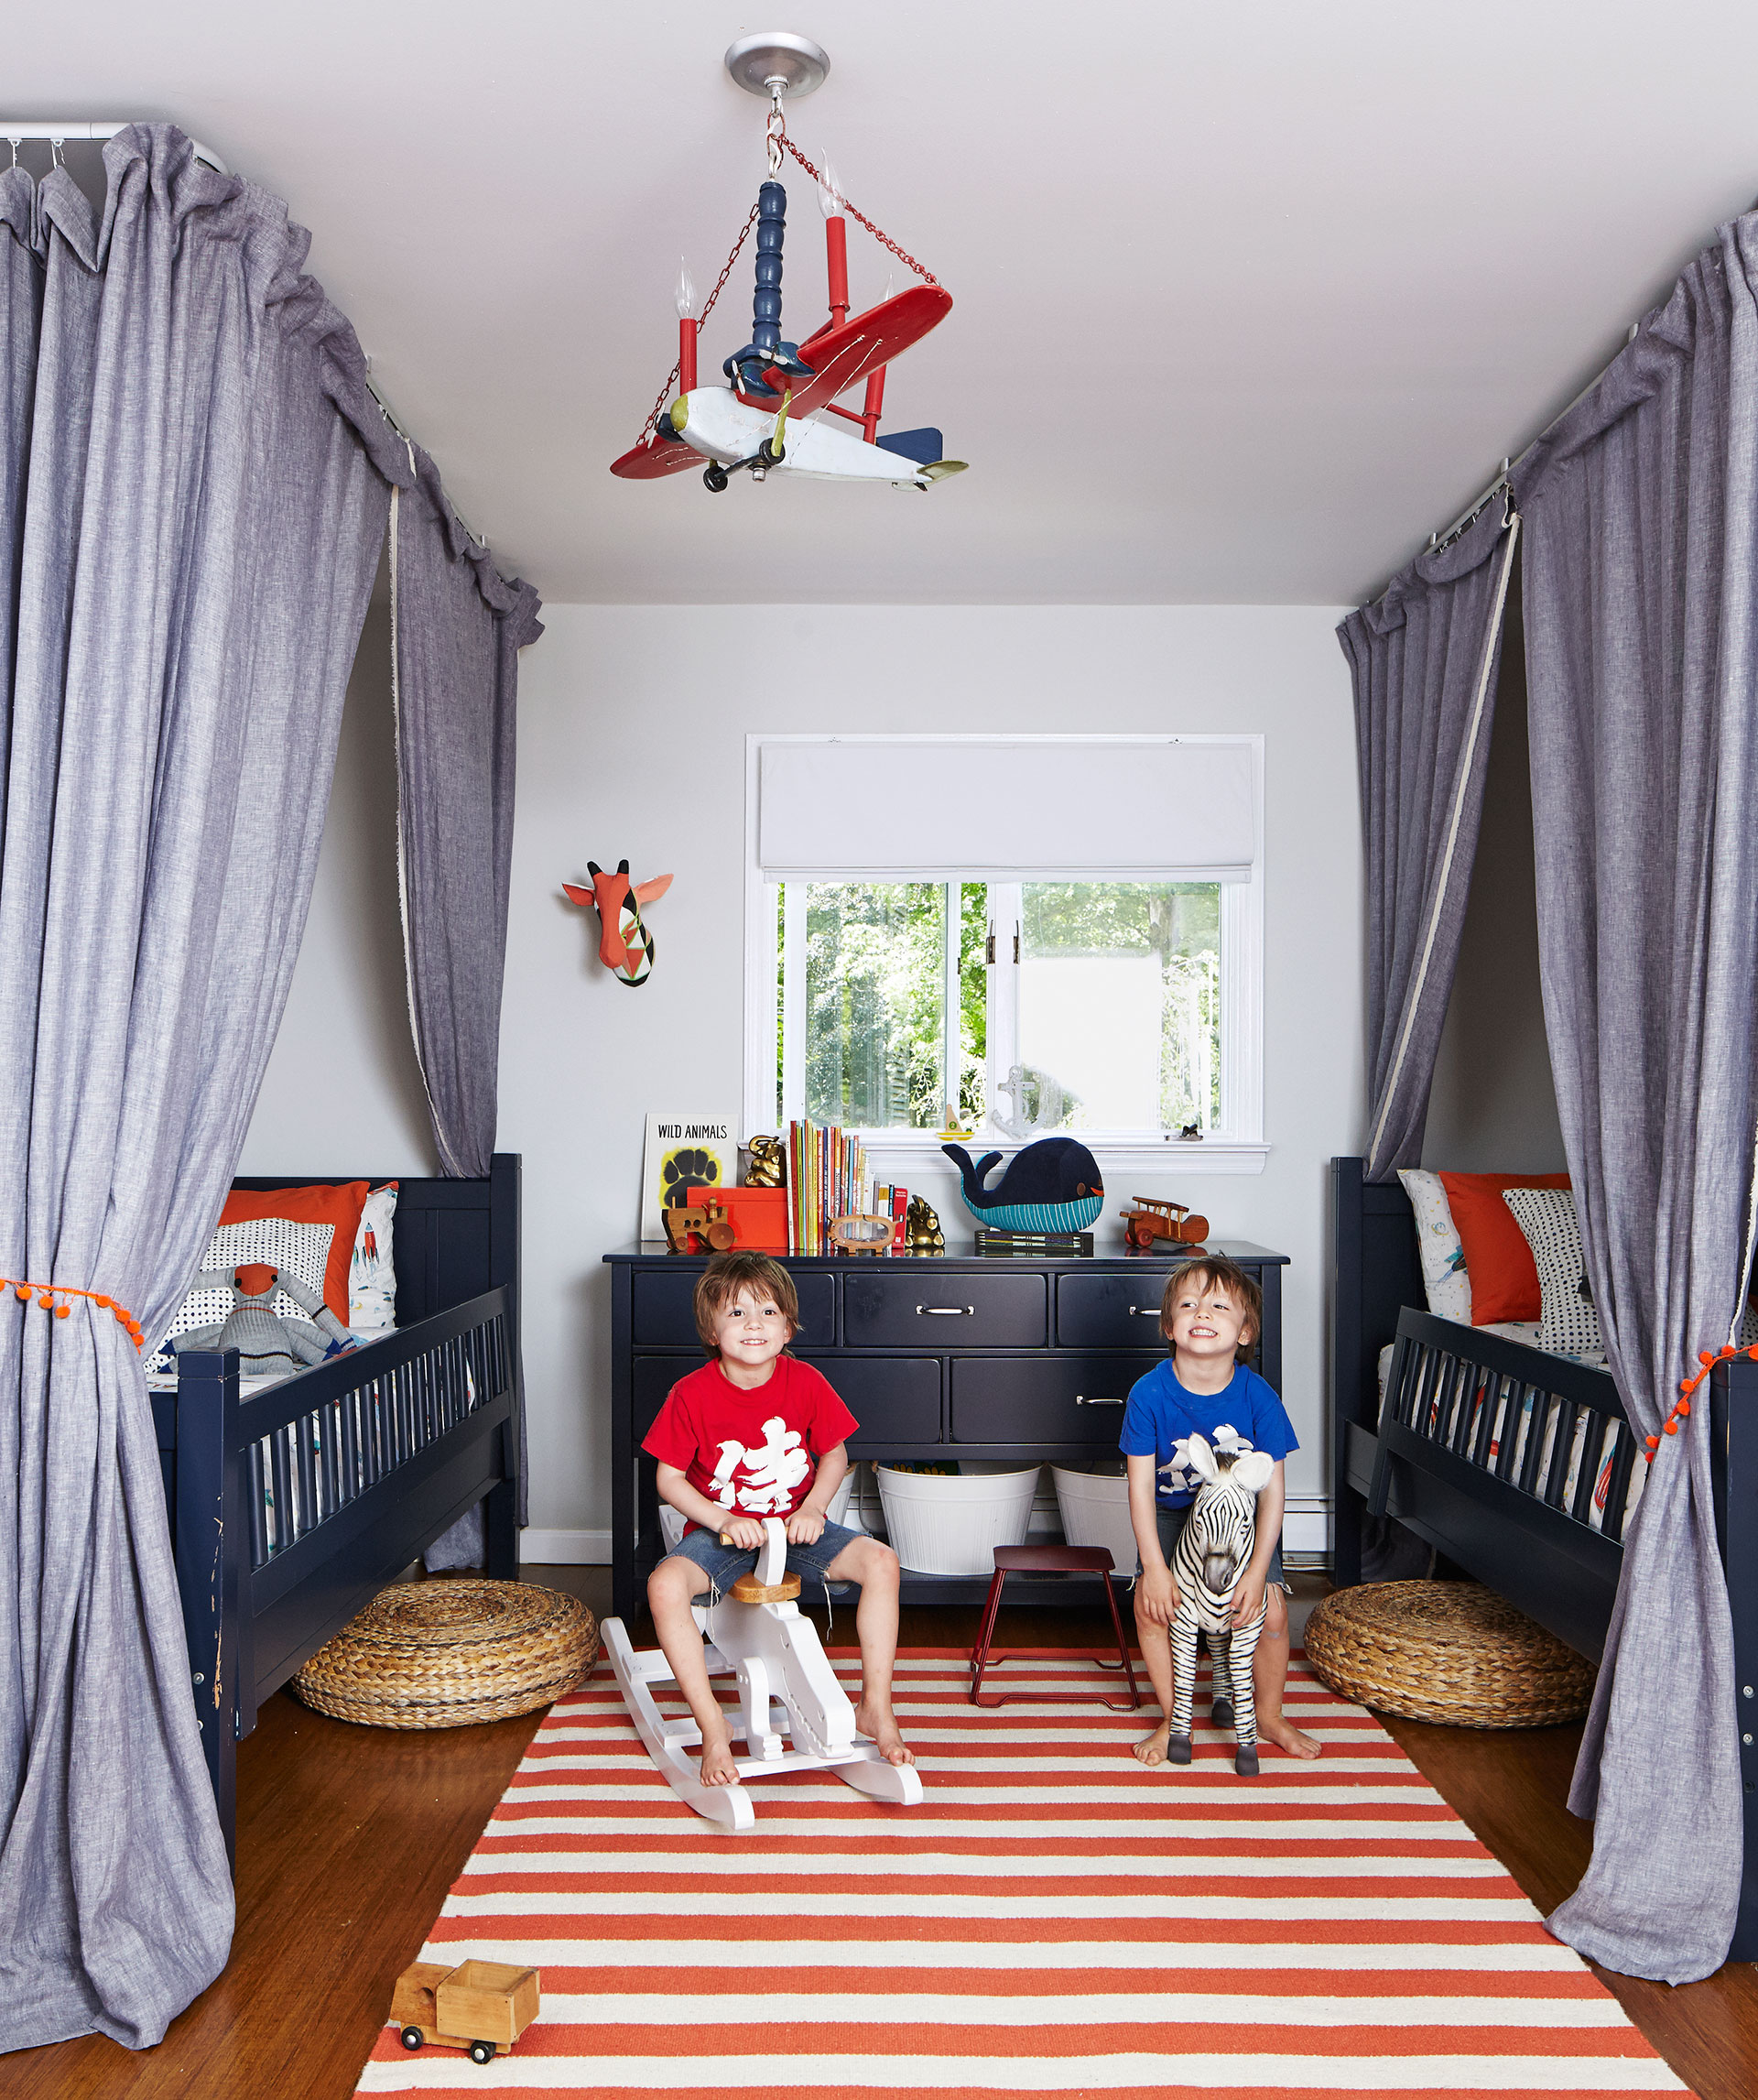 Kids Rooms Ideas 50 Kids Room Decor Ideas  Bedroom Design And Decorating For Kids